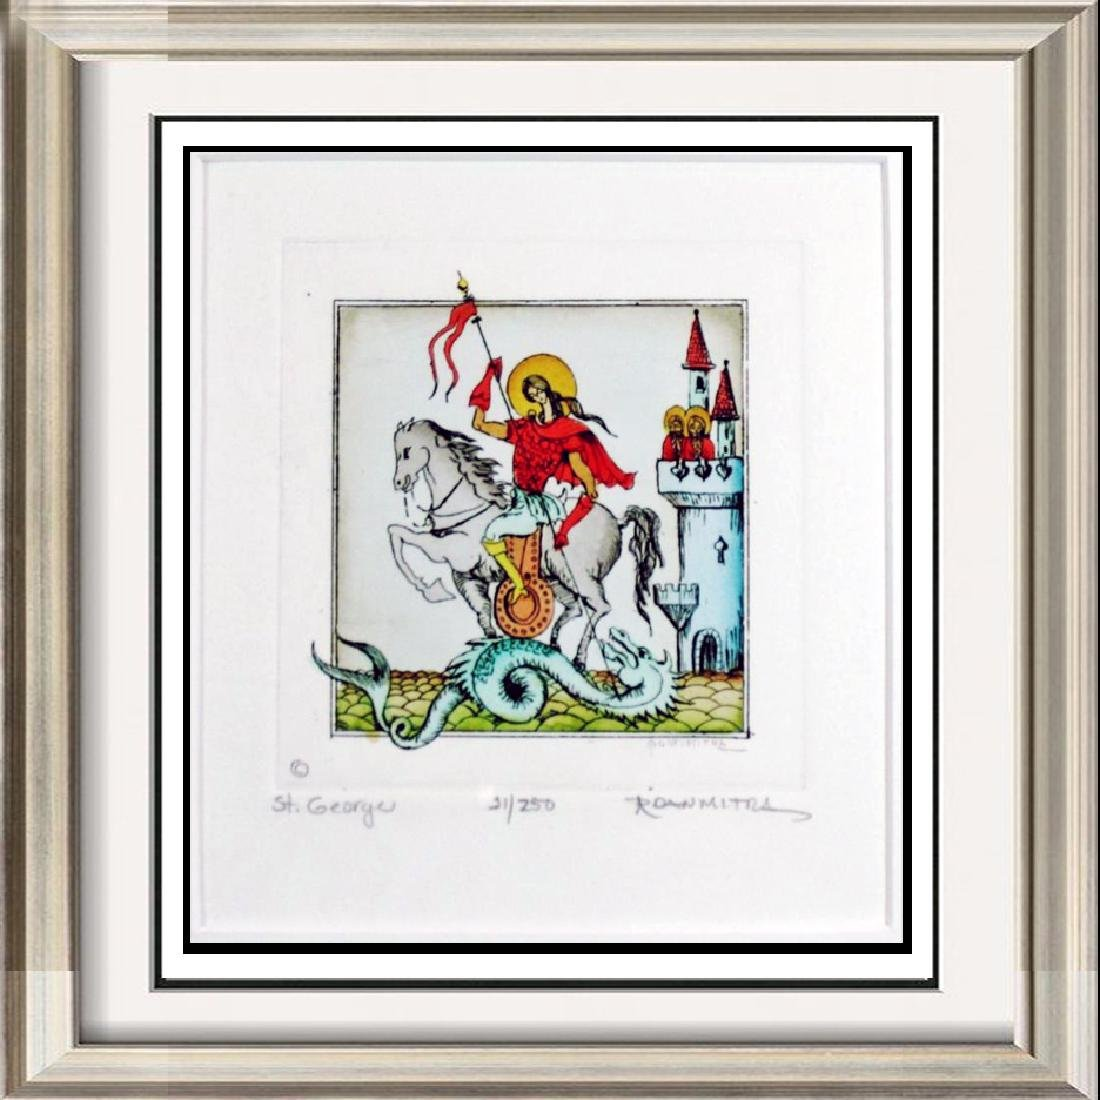 Beautiful Hand Colored Etching St George Signed Art